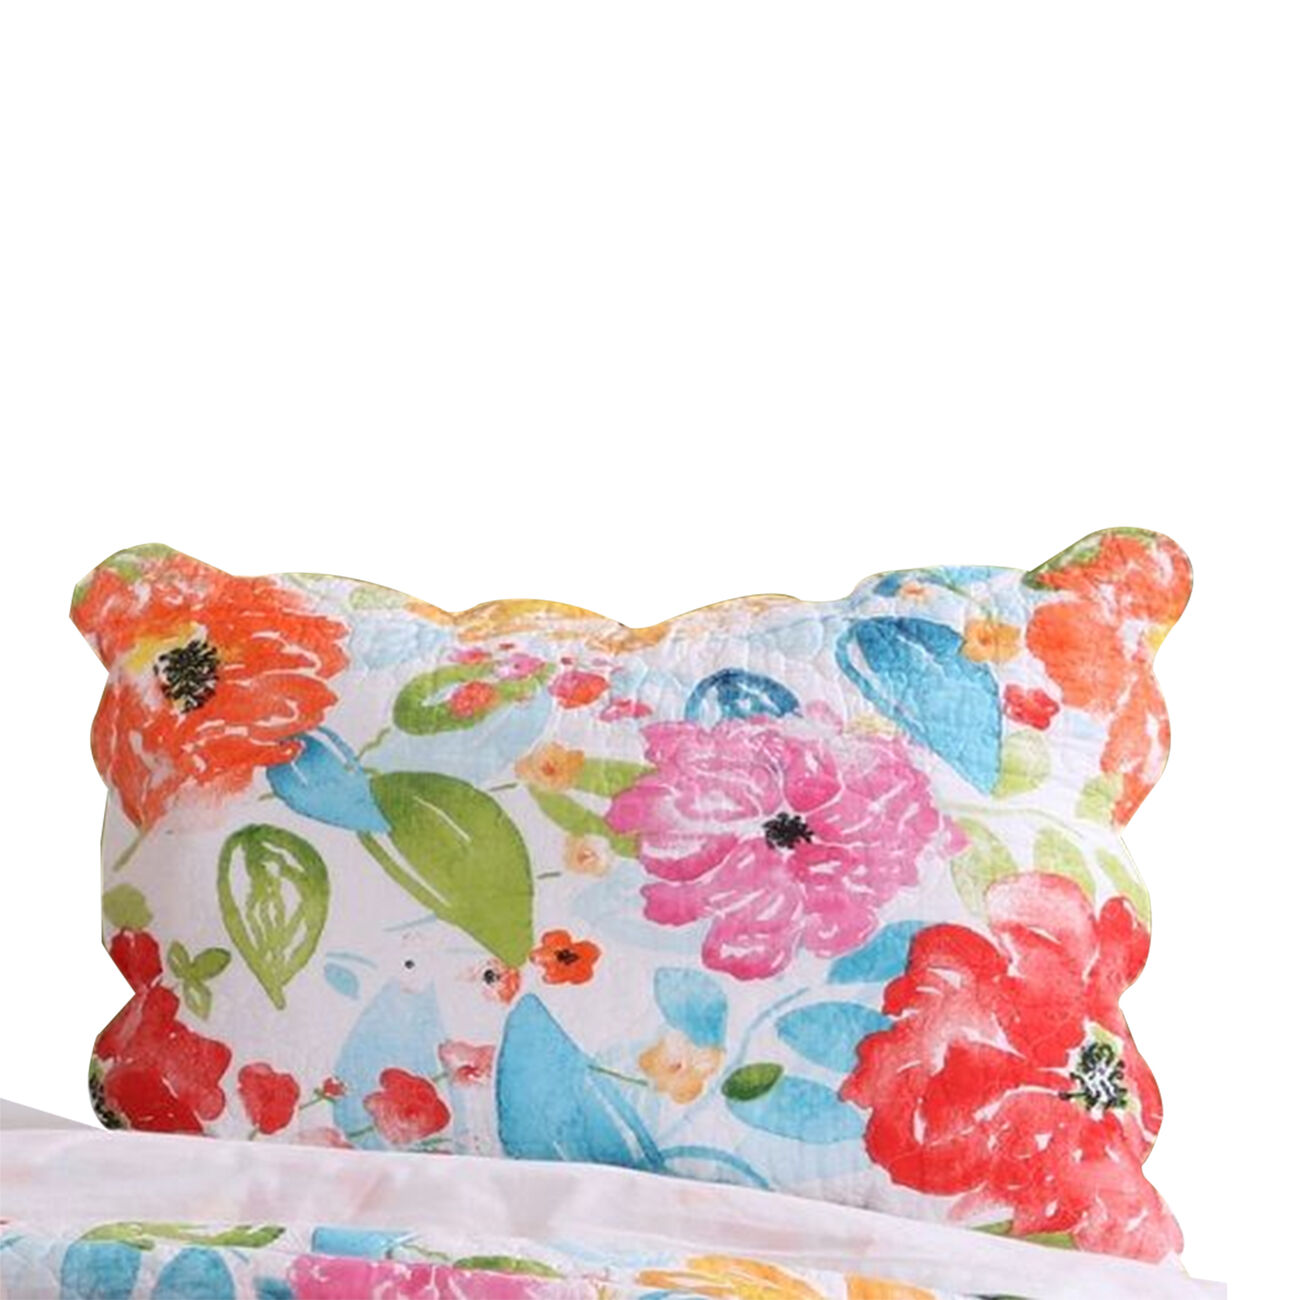 20 X 26 Floral Printed Pillow Sham with Polyester Filling, Multicolor